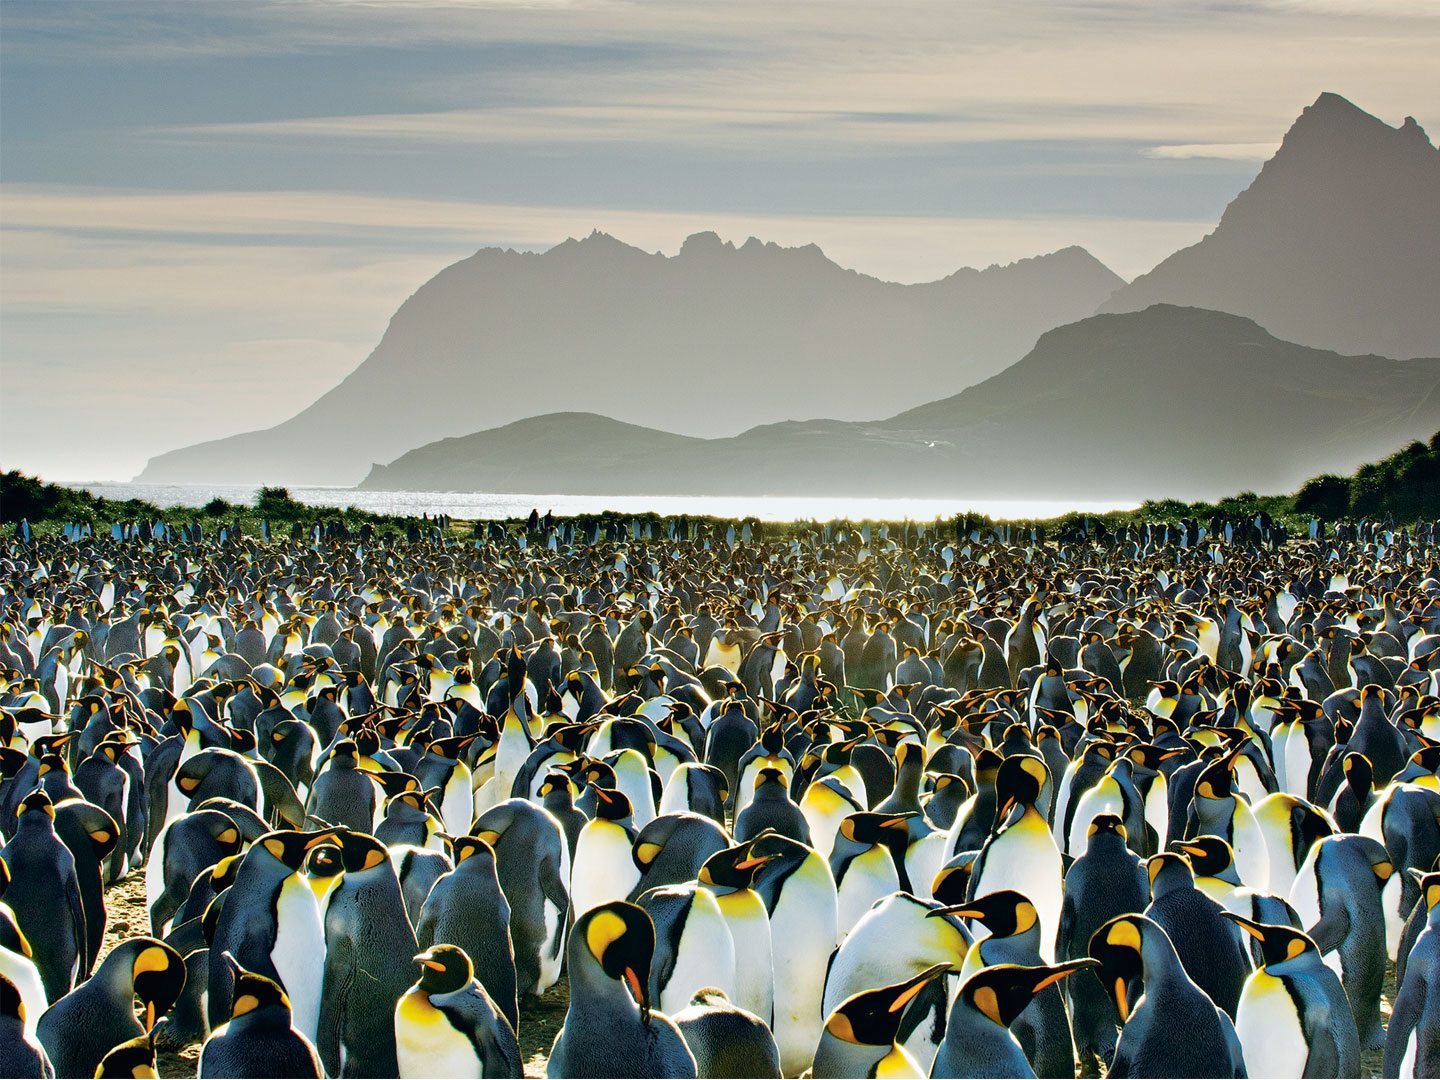 Visitors can view vast colonies of king penguins on South Georgia Island, a stop on Antarctic-bound cruises. Photo: Frans Lanting/National Geographic Creative